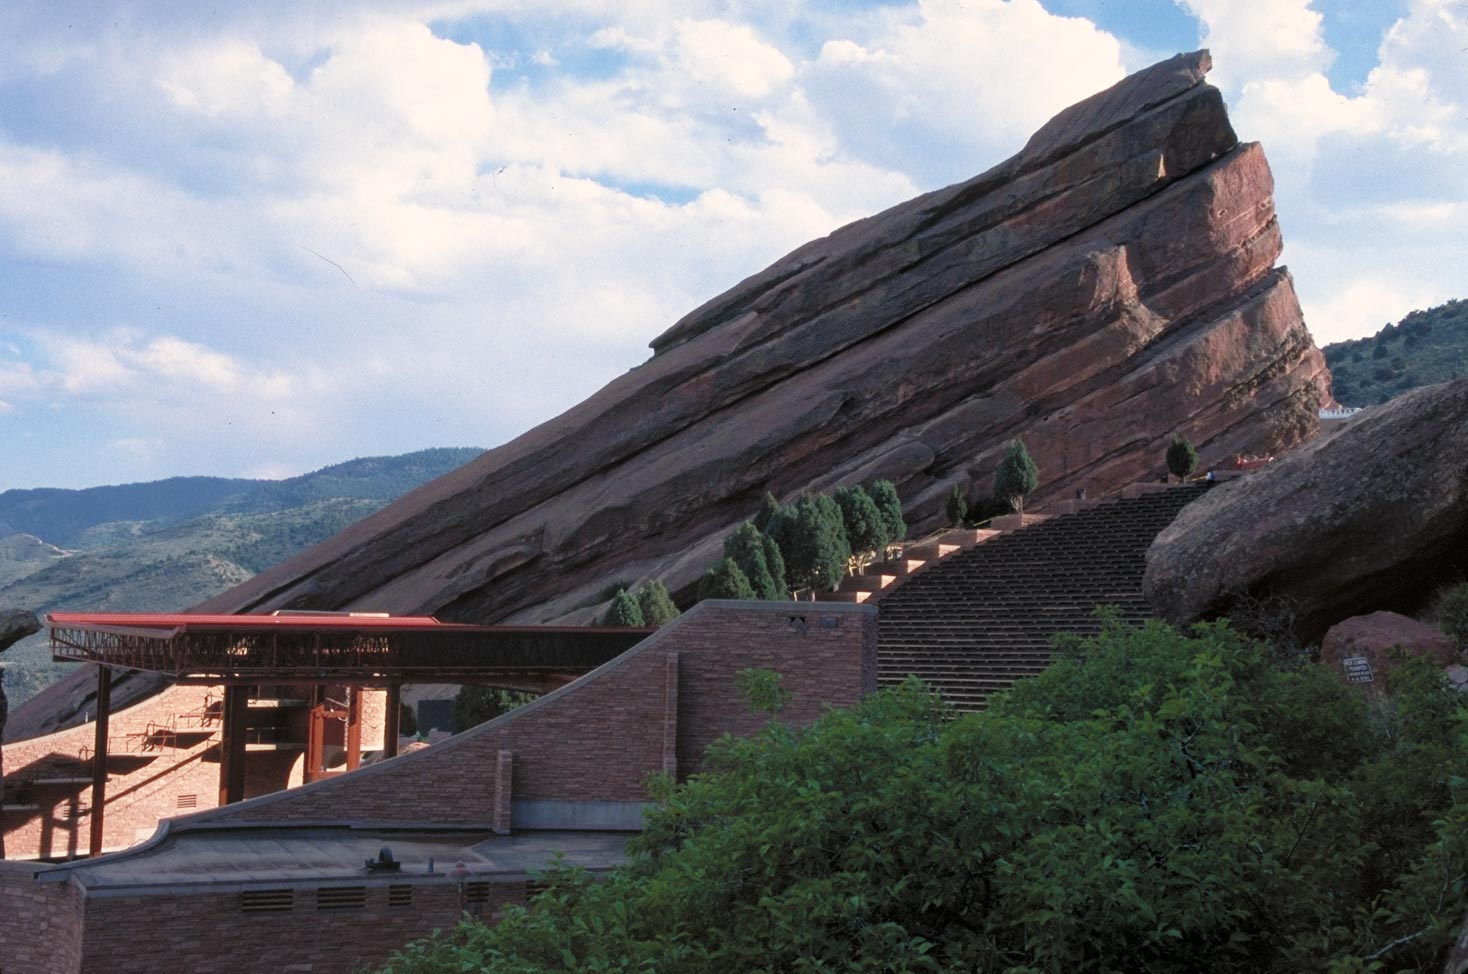 Creation Rock is one of two sandstone monoliths that frame the Red Rocks stage (the structure at left).